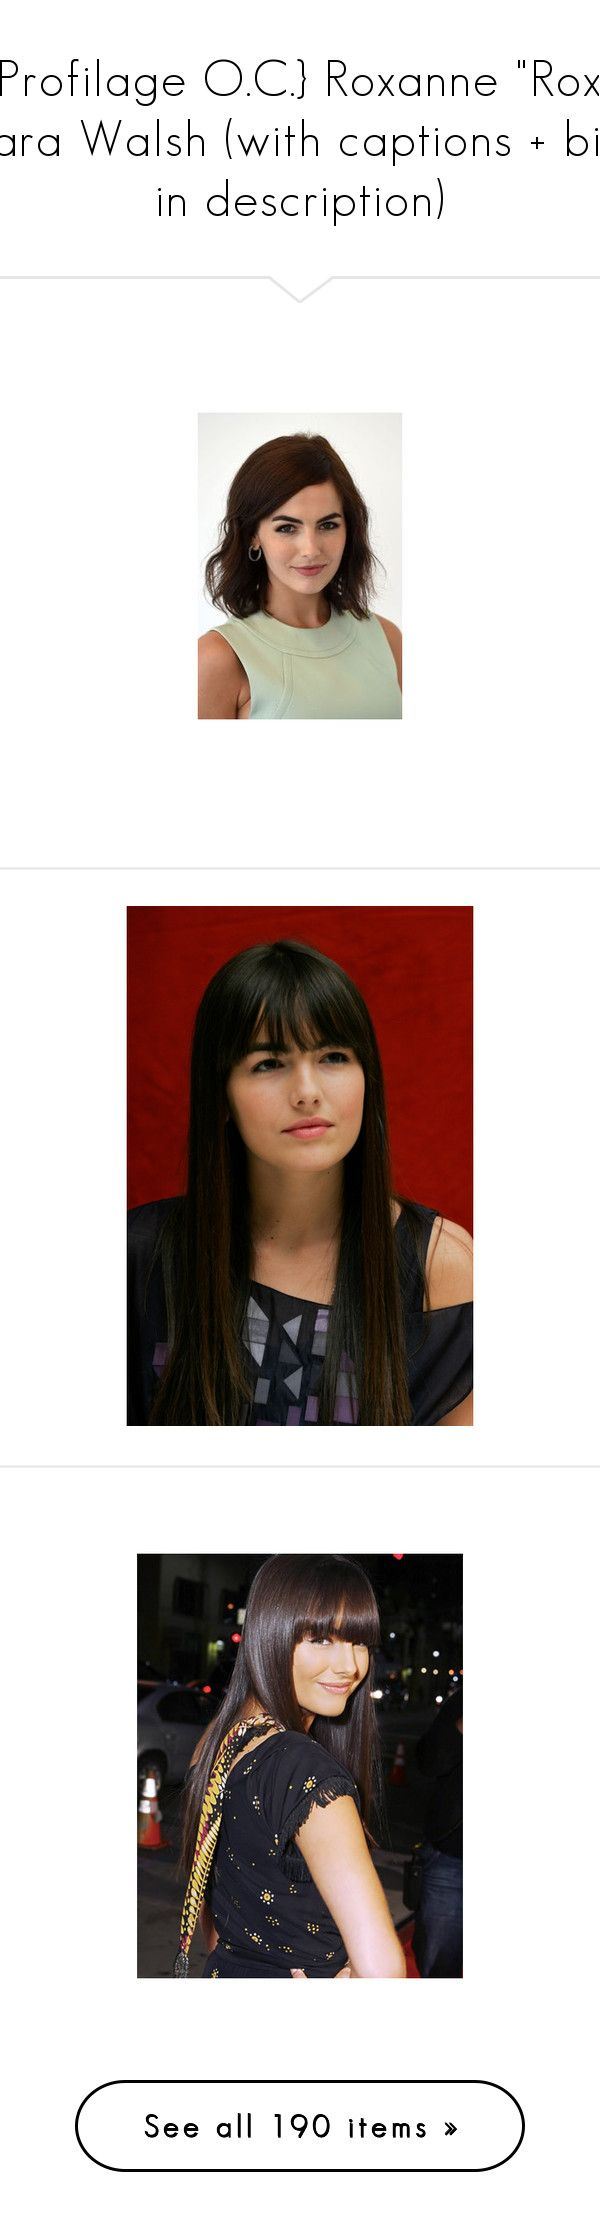 """""""{Profilage O.C.} Roxanne """"Rox"""" Lara Walsh (with captions + bio in description)"""" by katlayden ❤ liked on Polyvore featuring camilla belle, celebrities, pictures, people, backgrounds, girls, smoke, pics, animals and photos"""